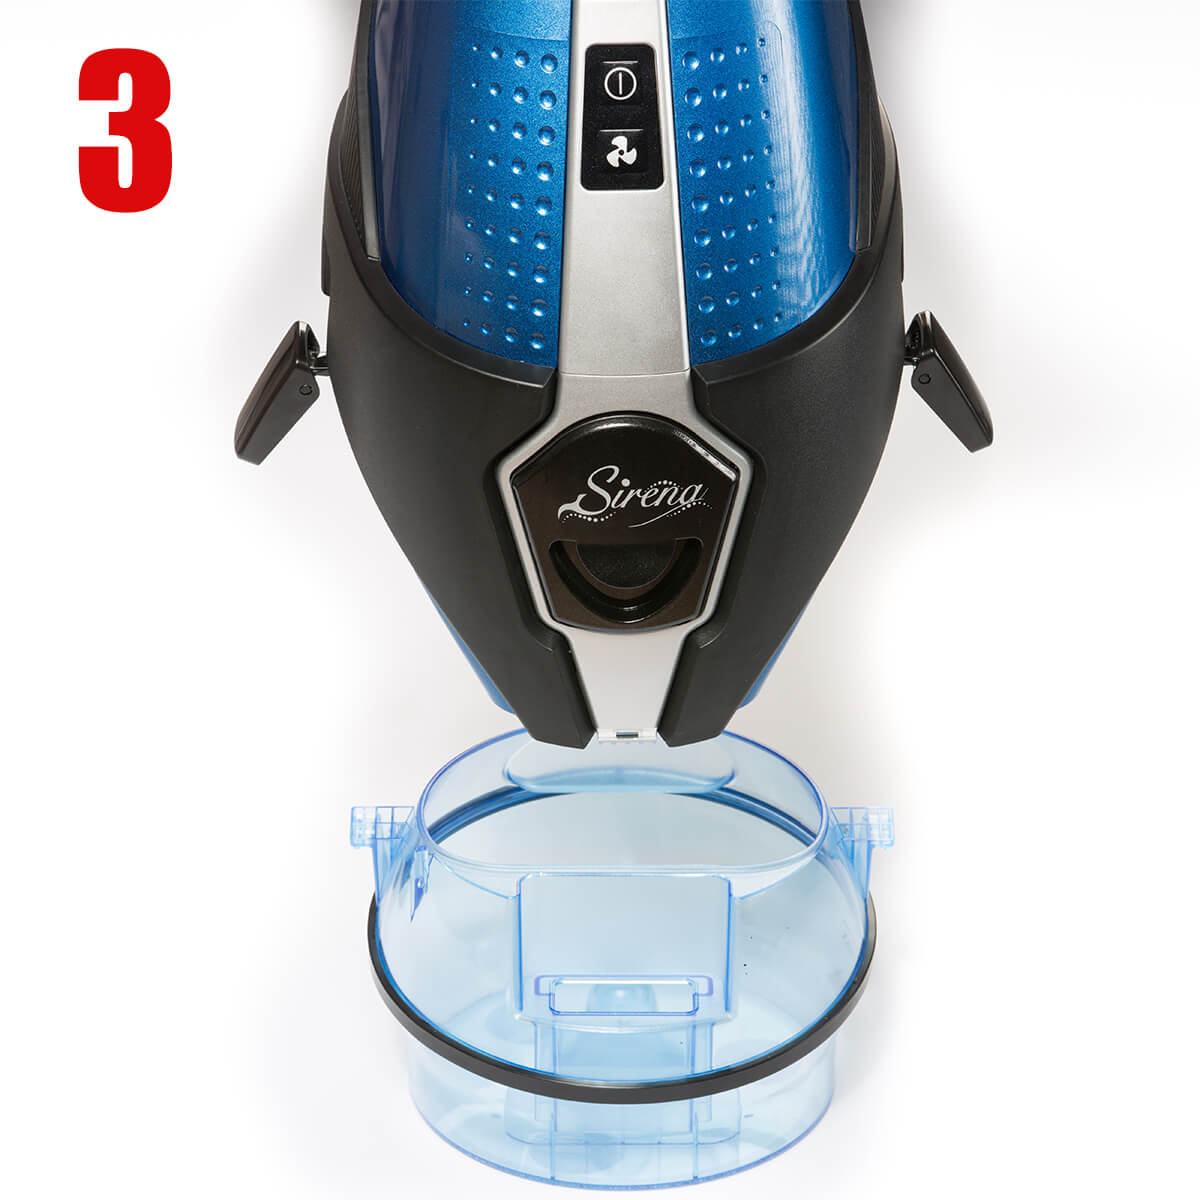 How To Use Your Sirena Vacuum Cleaner - Step 3